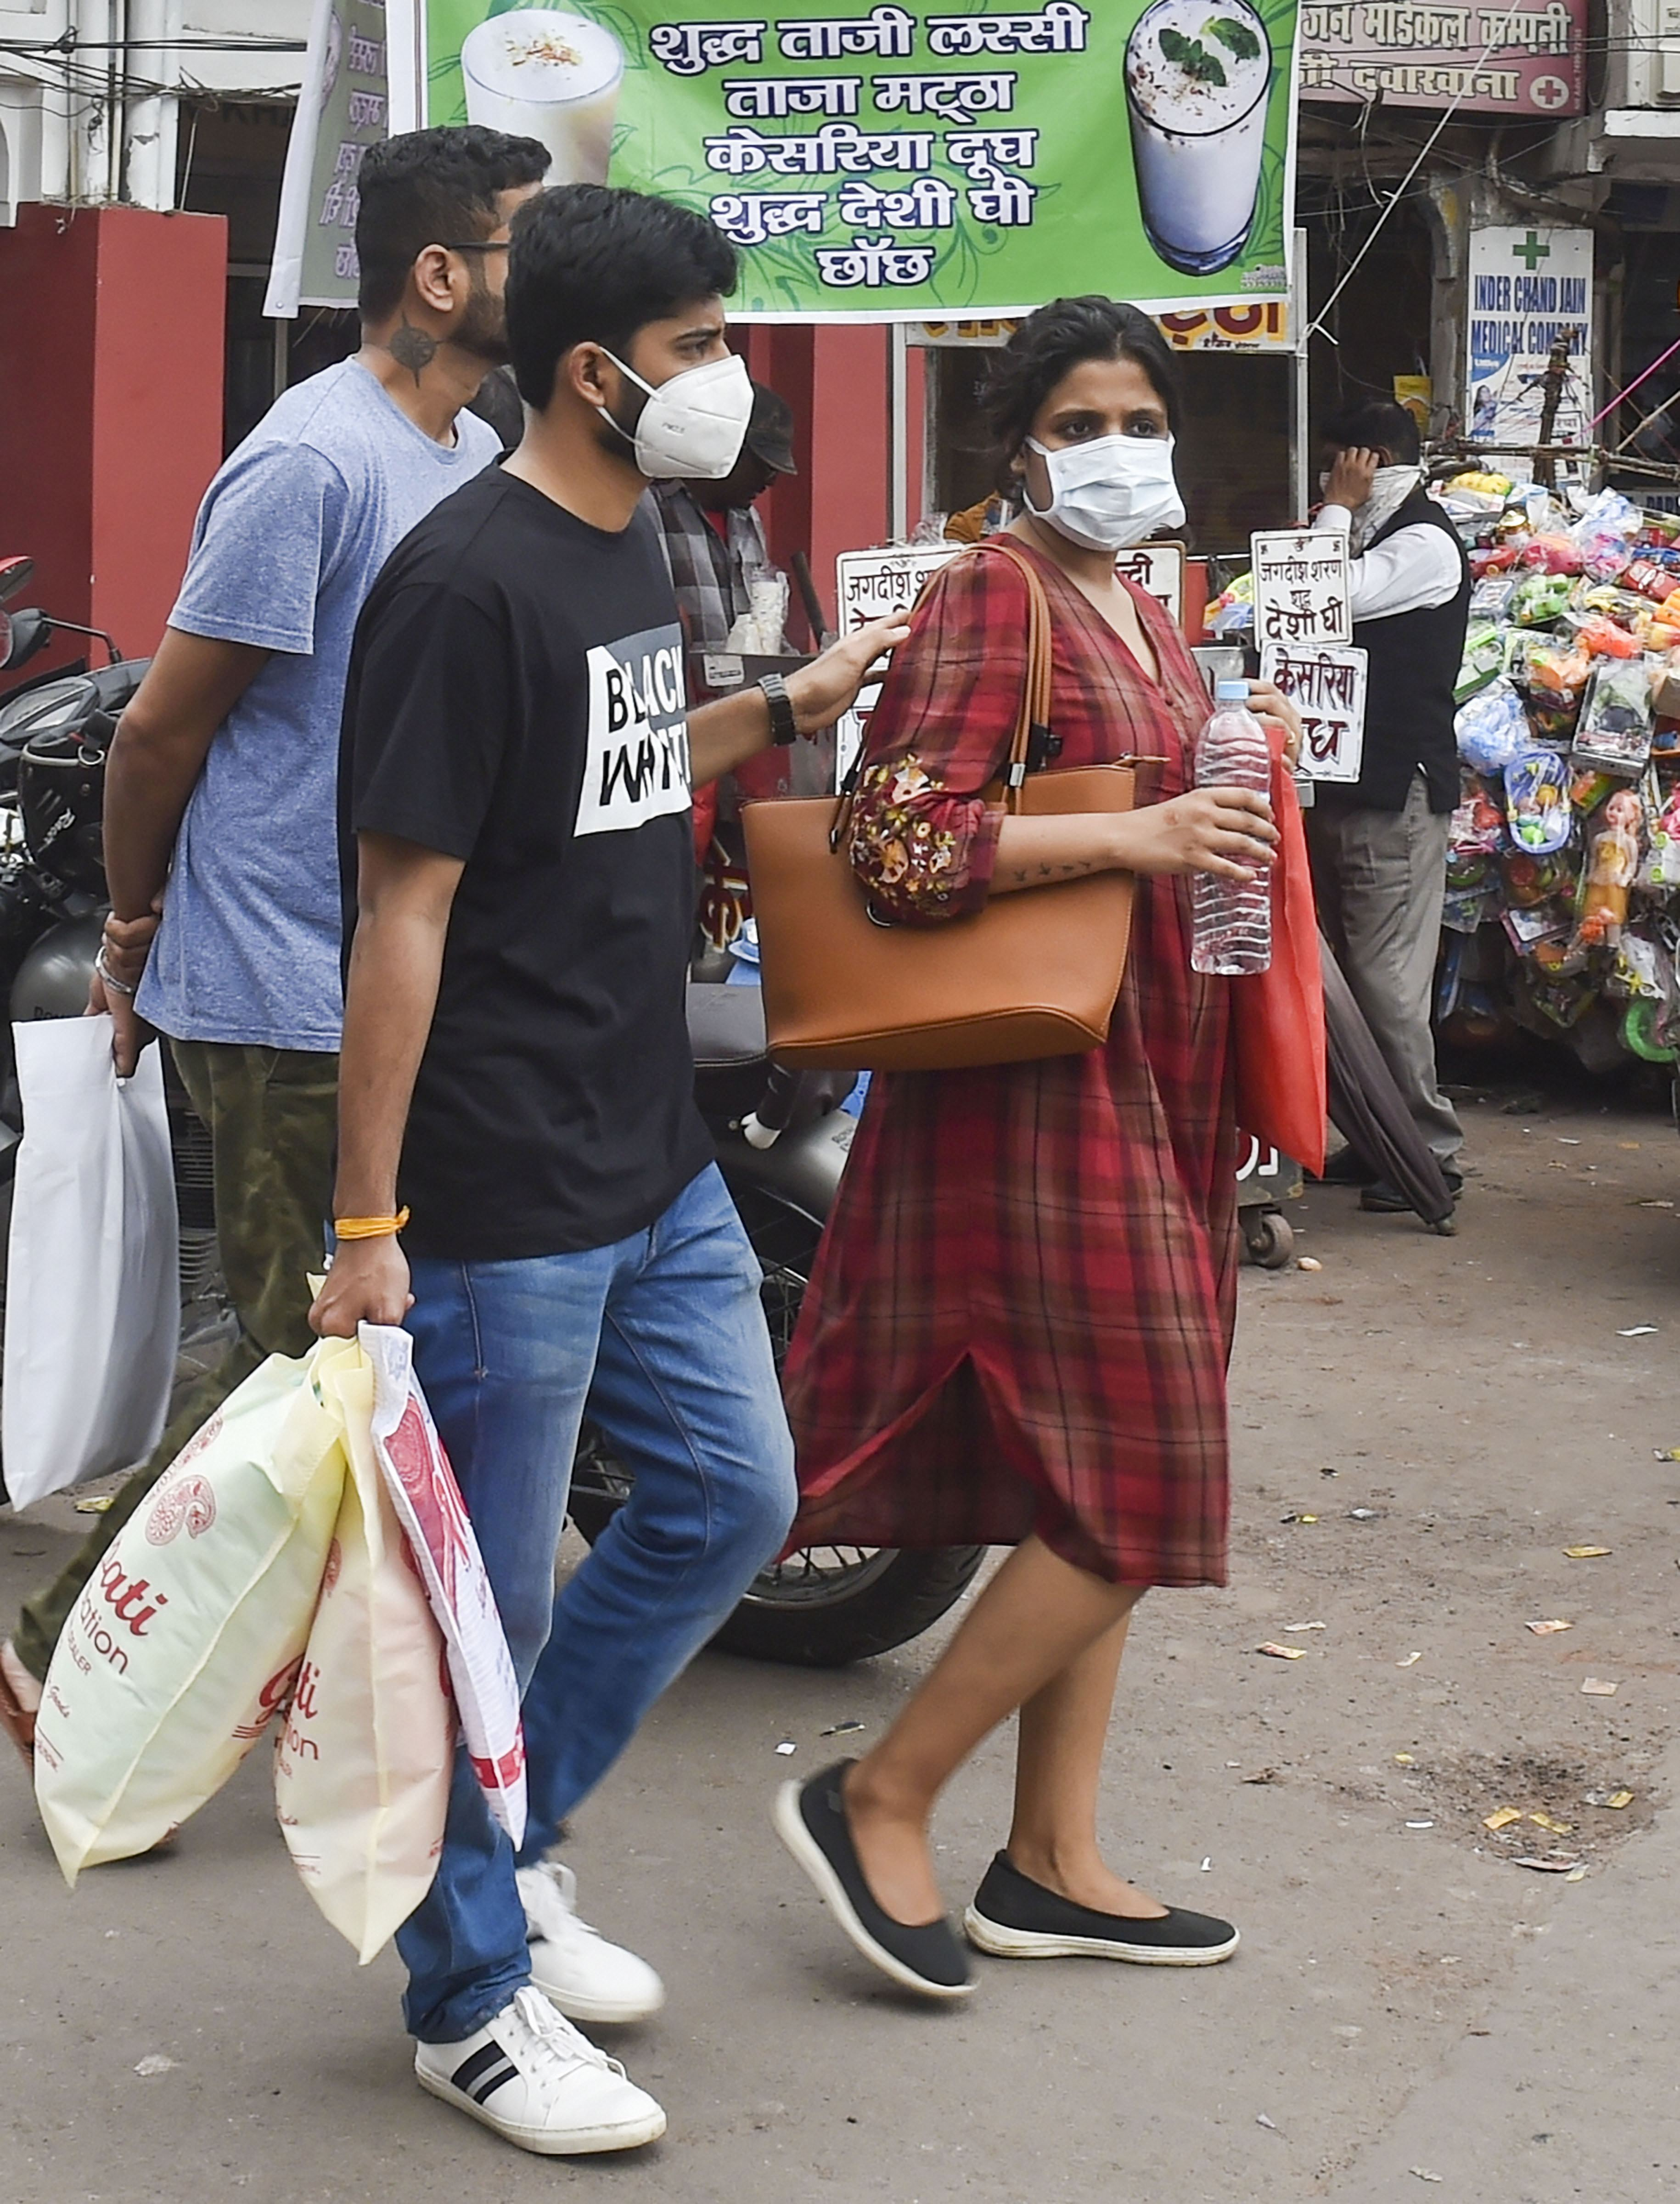 People wear protective masks in view of coronavirus pandemic, at a market in Lucknow on Sunday